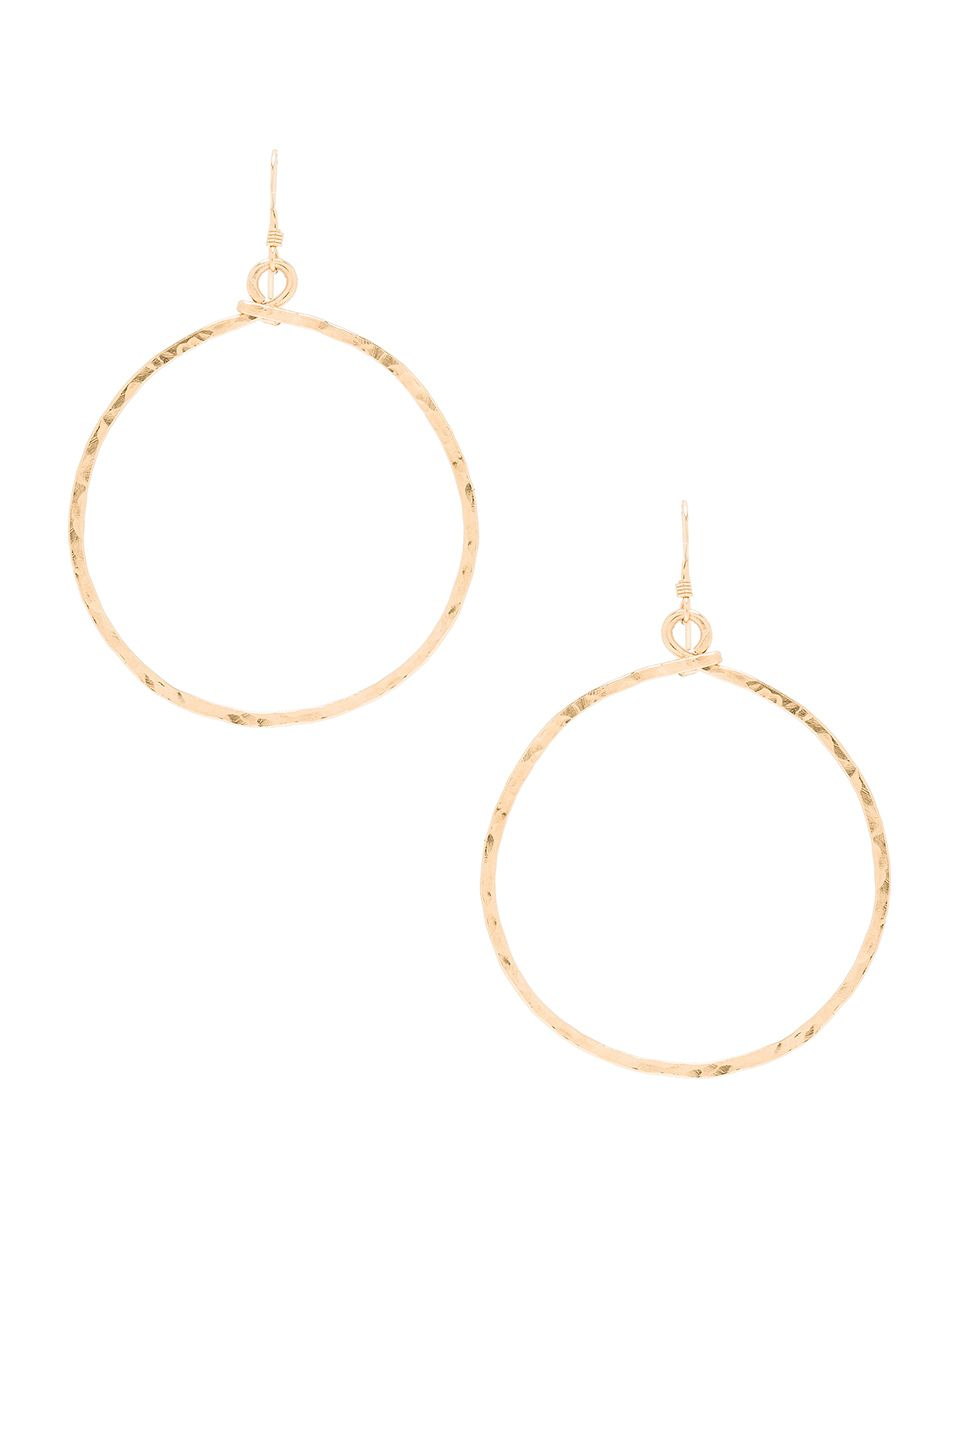 Mimi & Lu Echo Hoop Earrings in Gold | REVOLVE